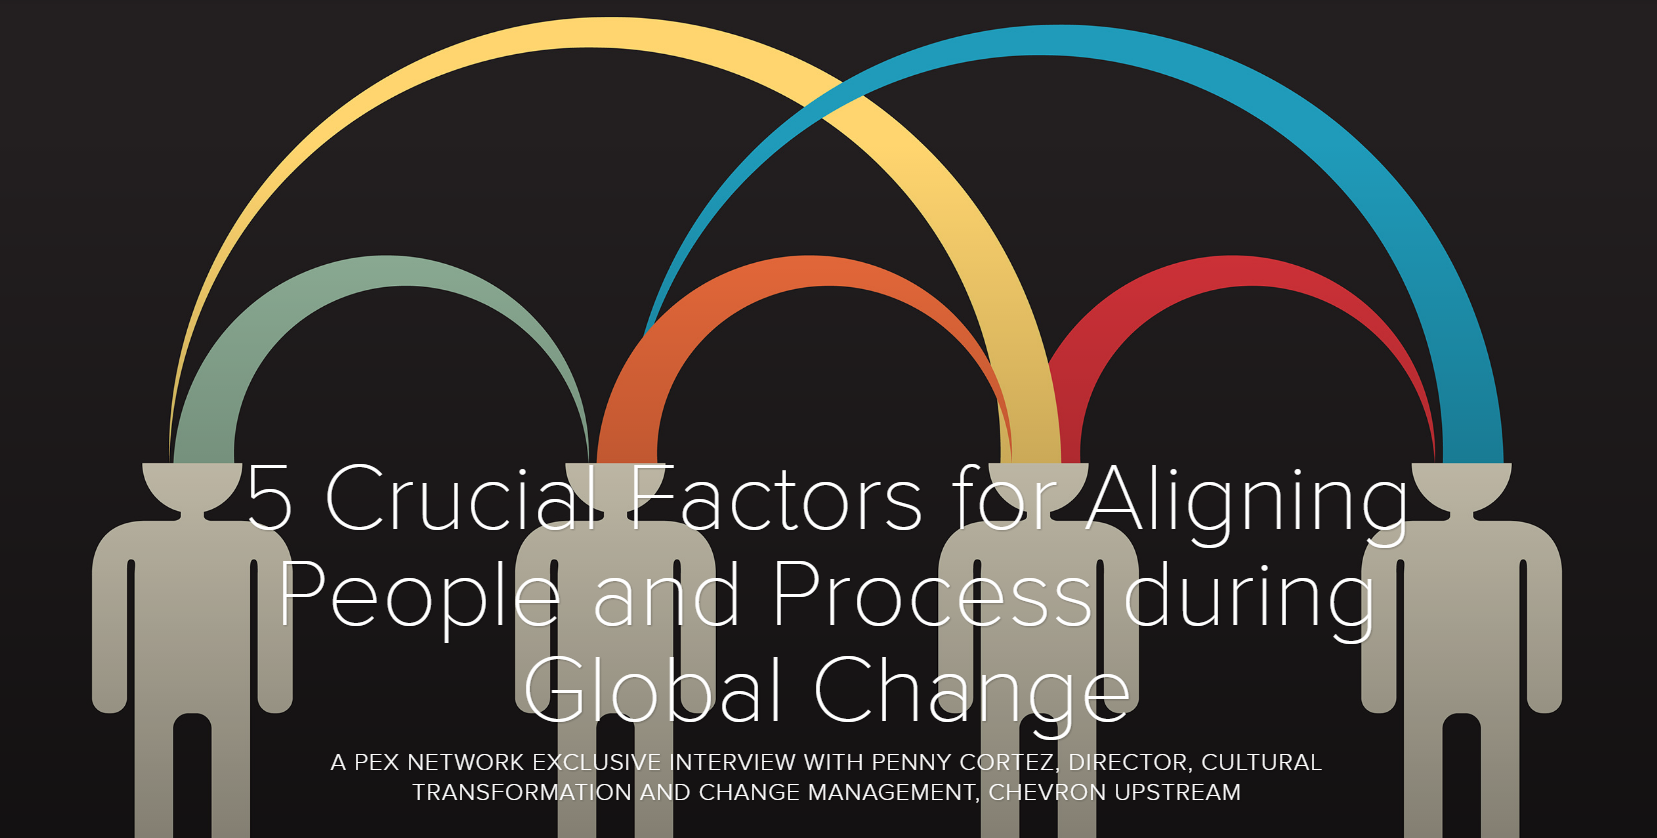 5 Crucial Factors for Aligning People and Process during Global Change